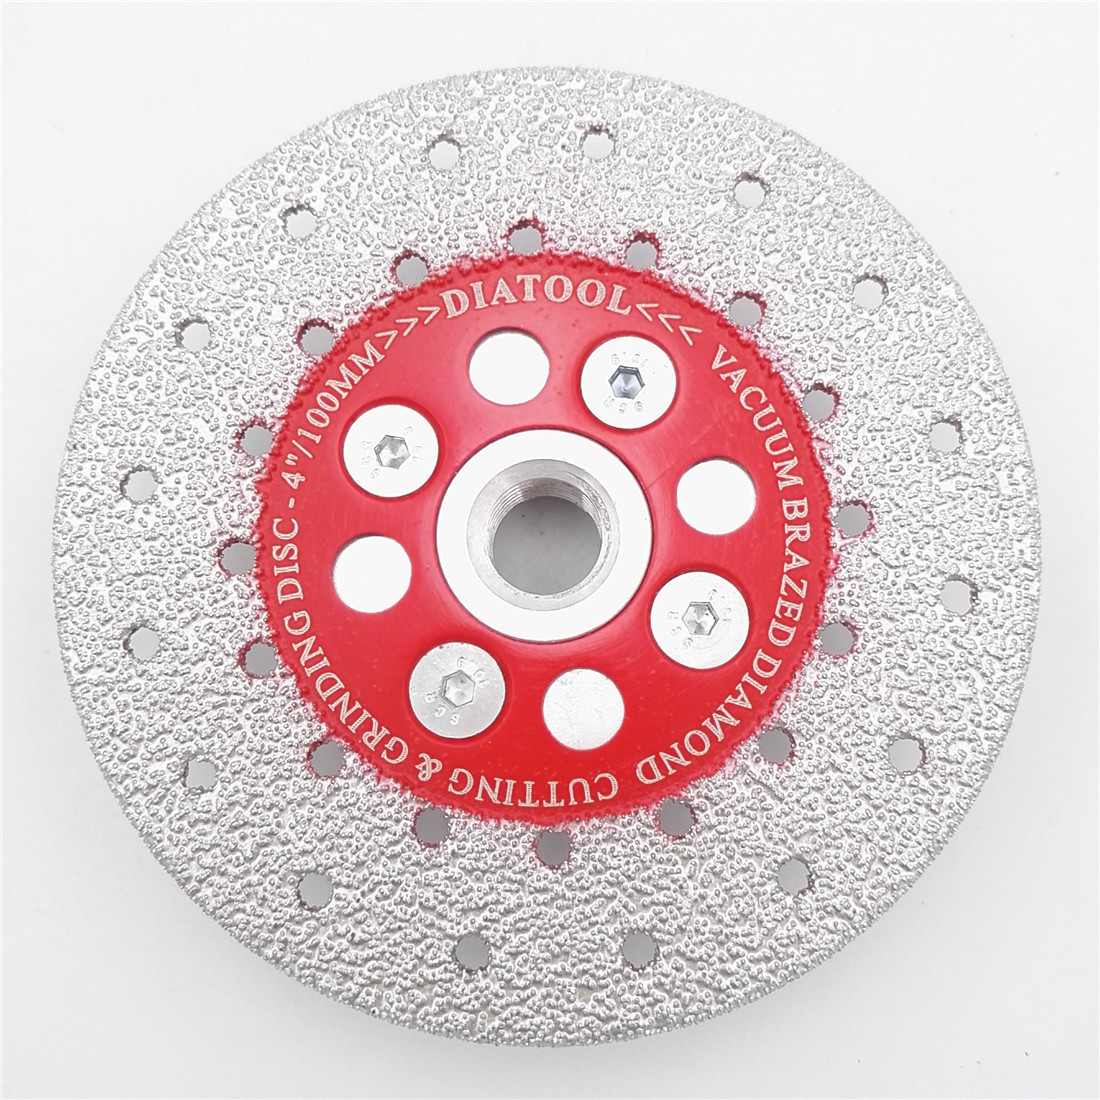 SHDIATOOL 1pc Premium Quality M14 Thread Double Sided Vacuum Brazed Diamond Cutting & Grinding Disc Sawblade Diamond Wheel